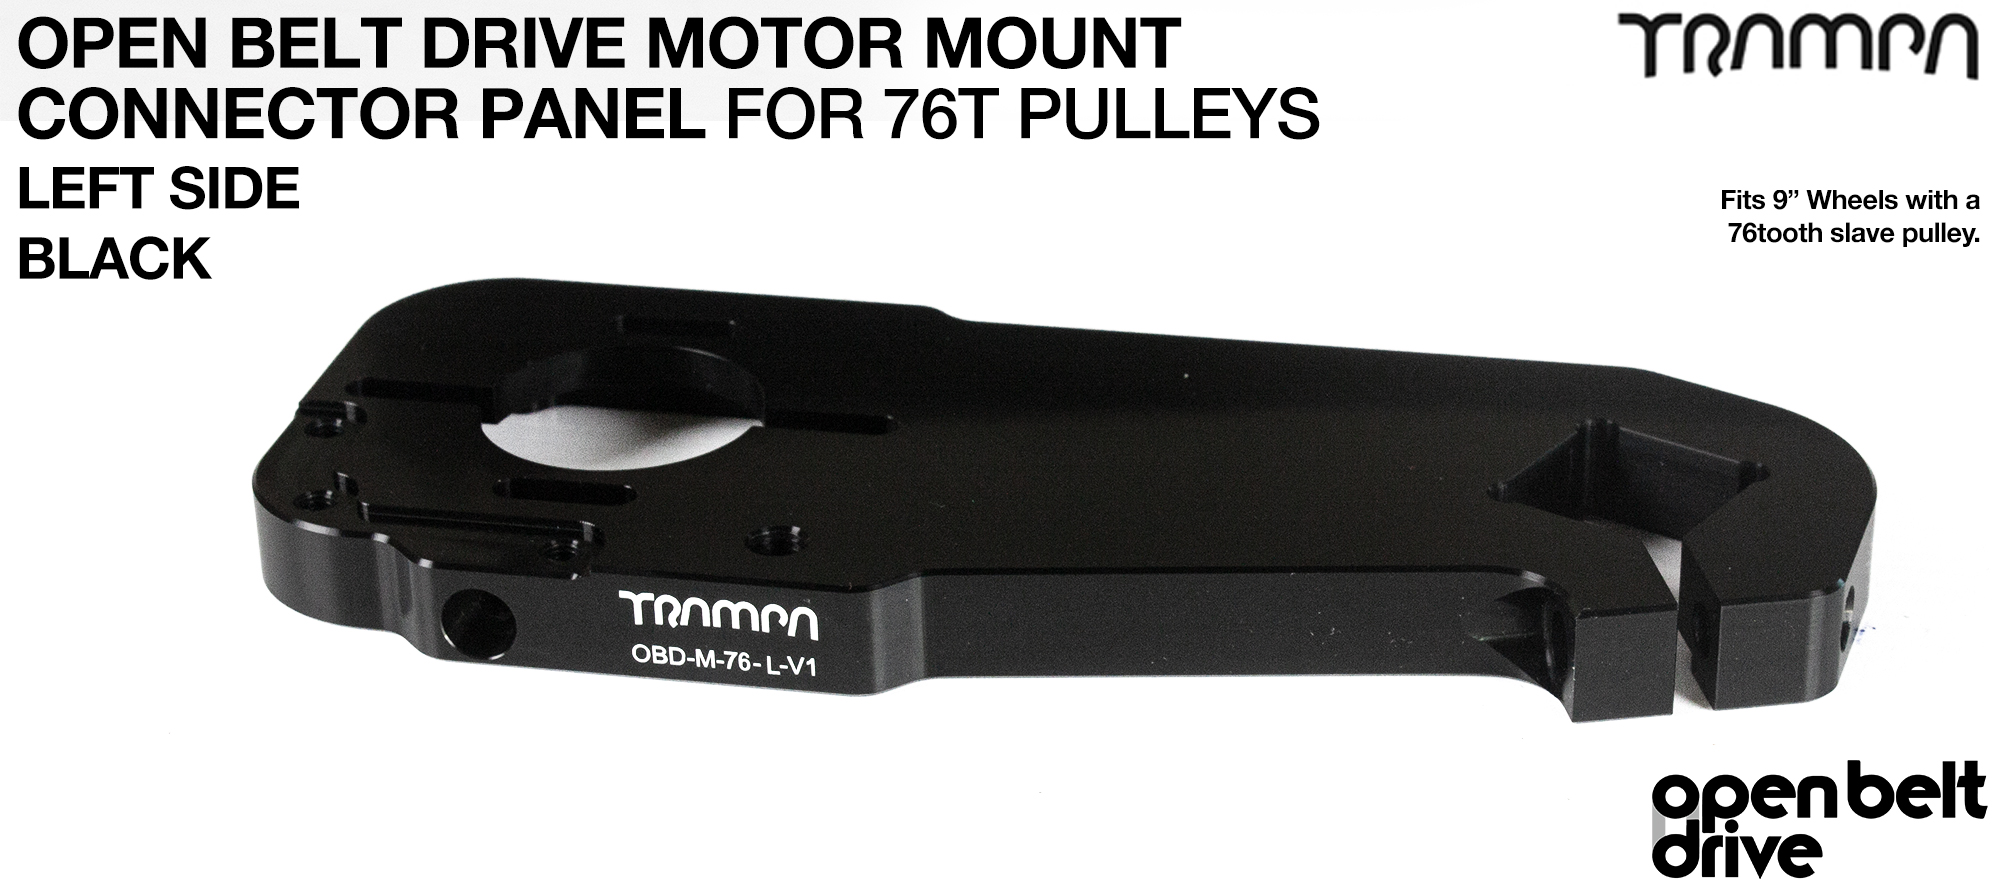 OBD Motor Mount Connector Panel for 76 tooth pulleys - REGULAR - BLACK